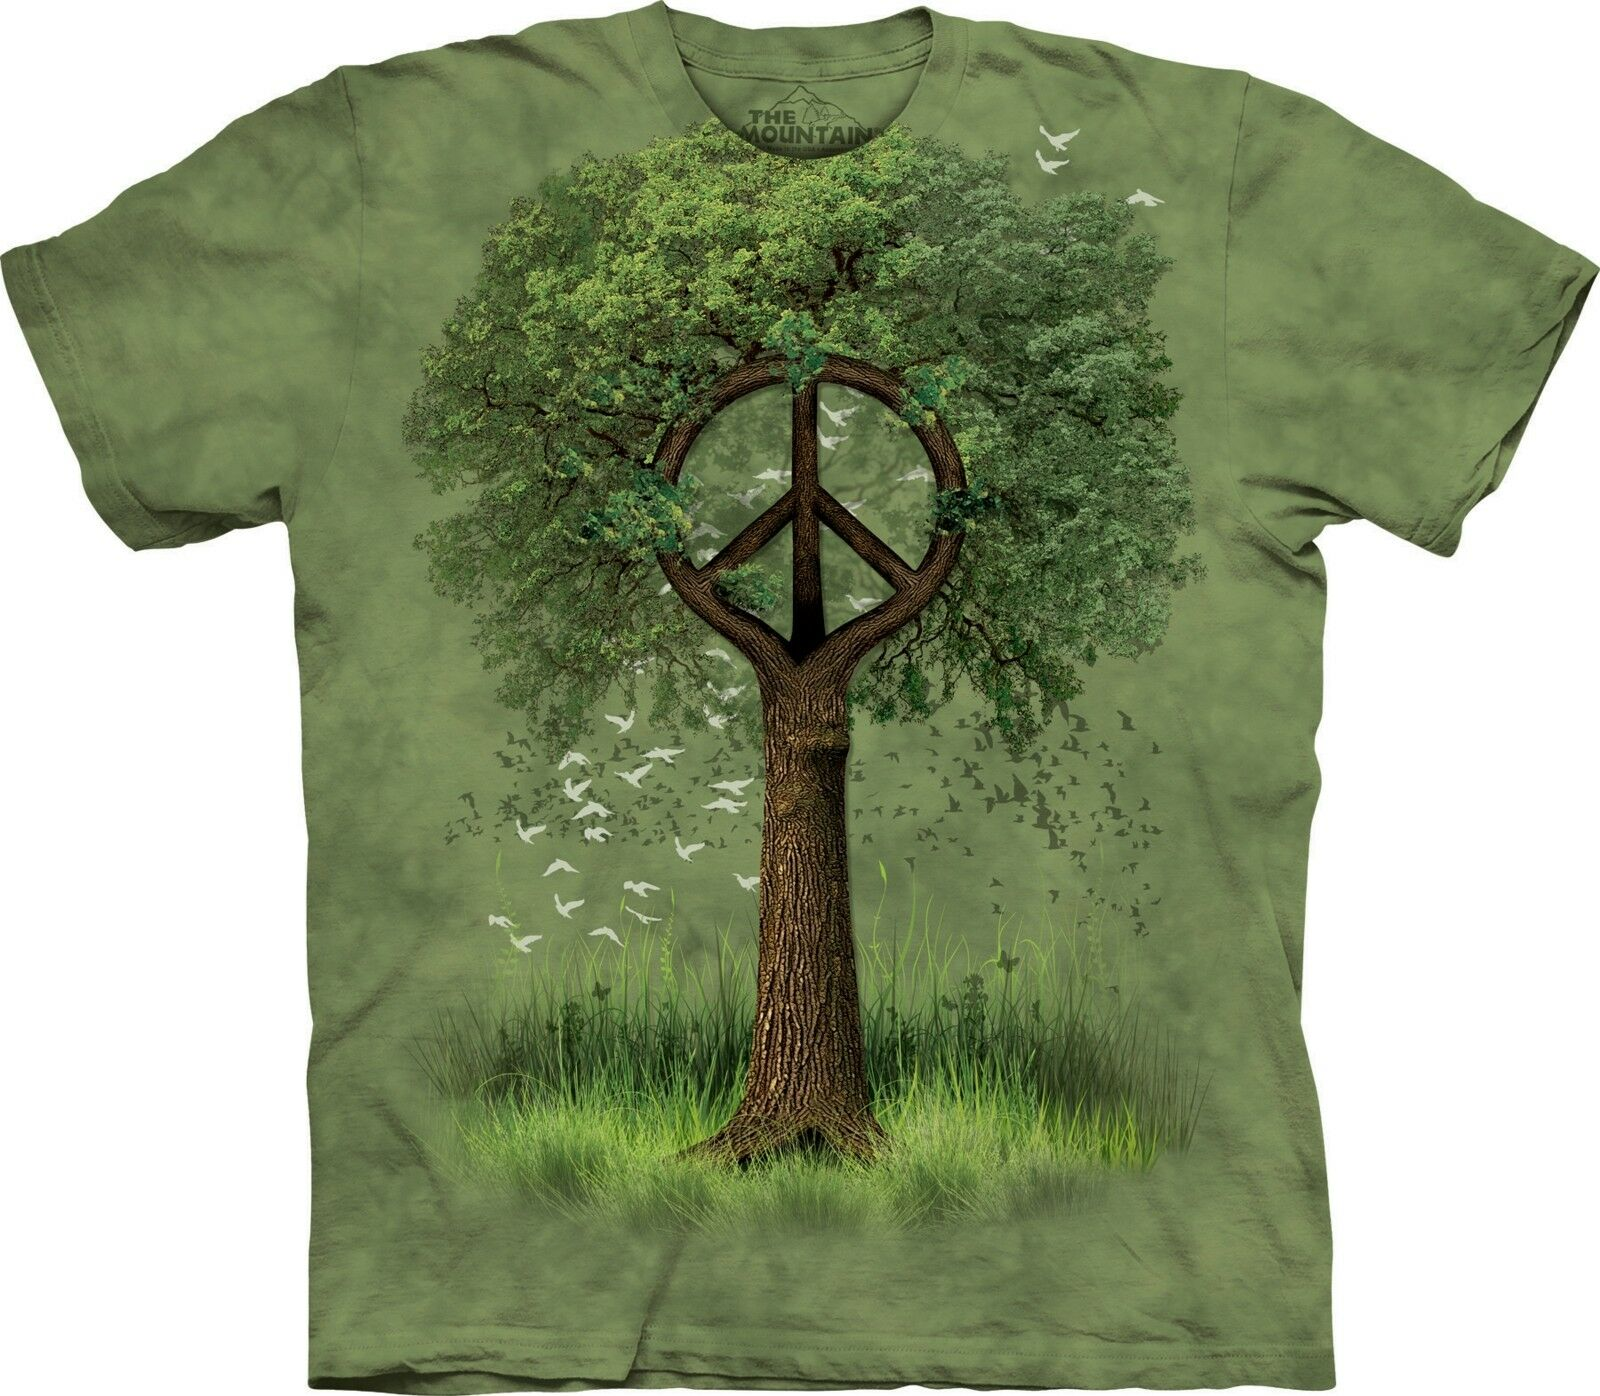 Roots of Peace Nature Shirt Adult Unisex The Mountain